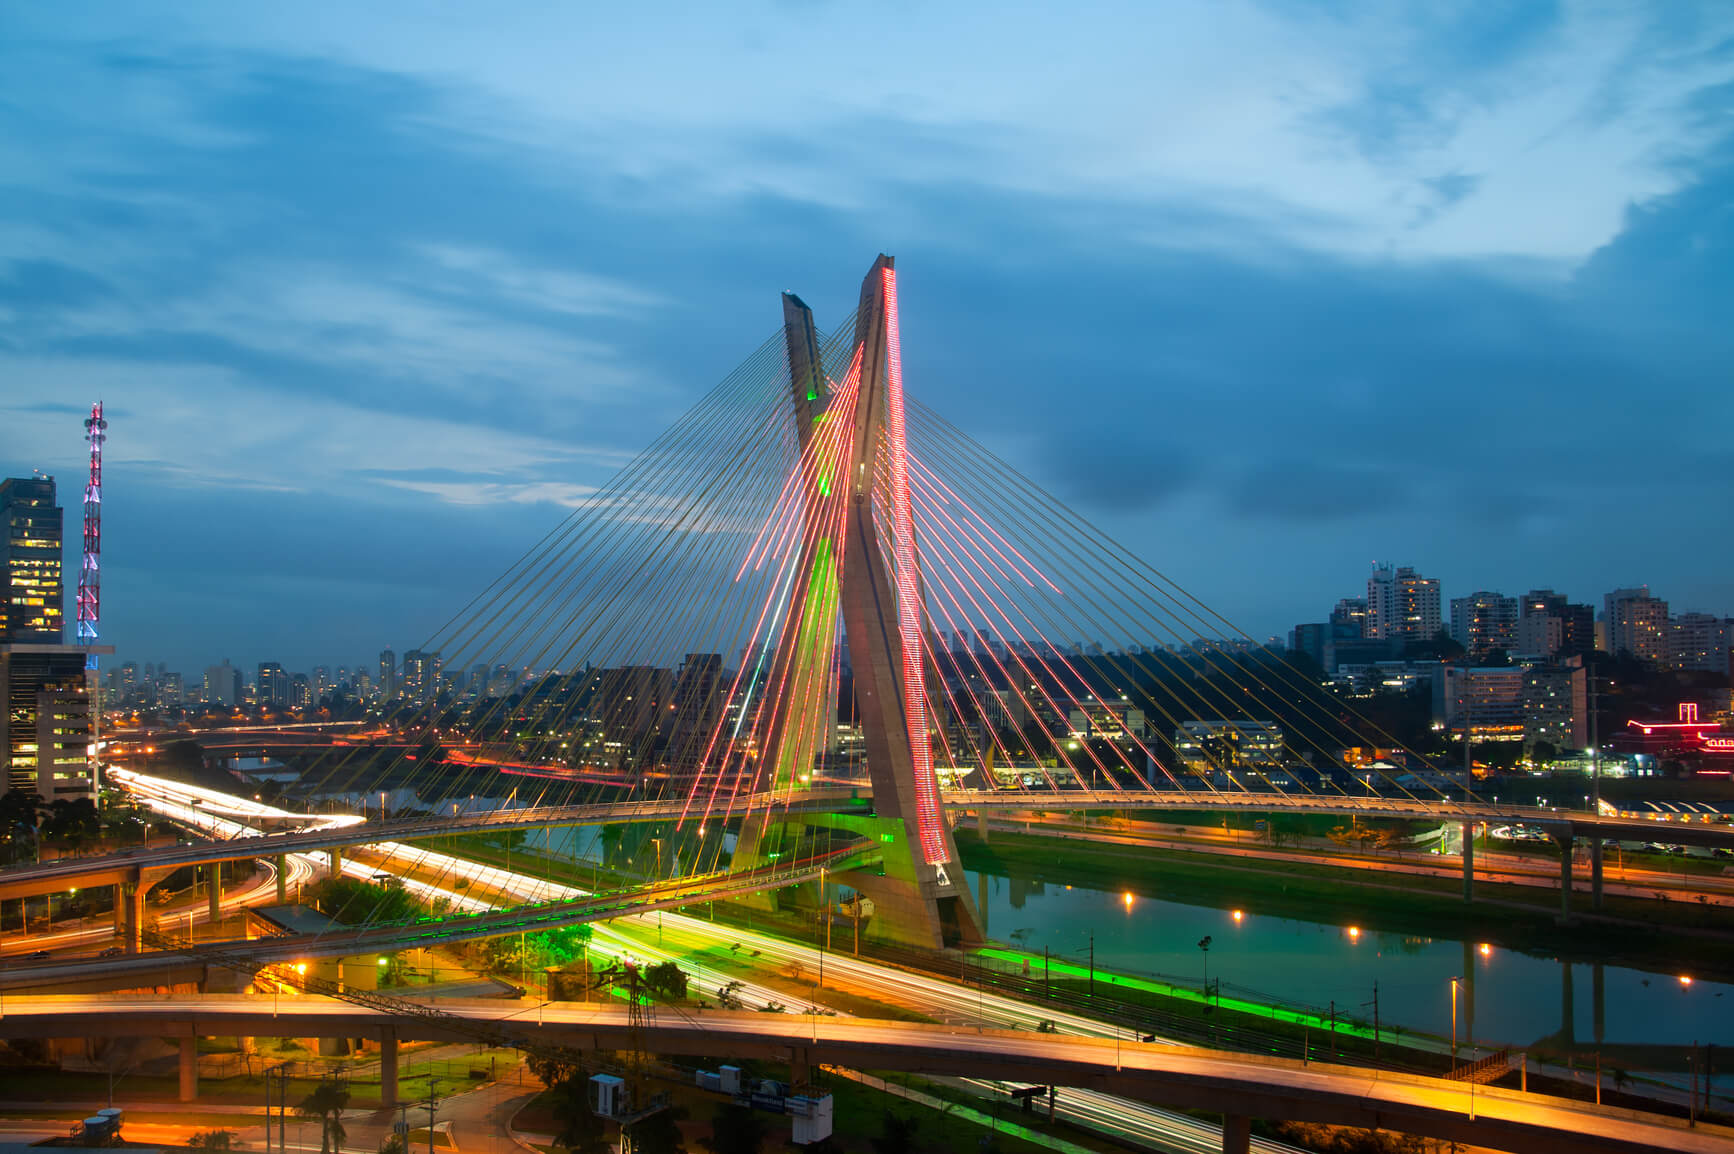 San Francisco to Sao Paulo, Brazil for only $437 roundtrip (Sep-Mar dates)